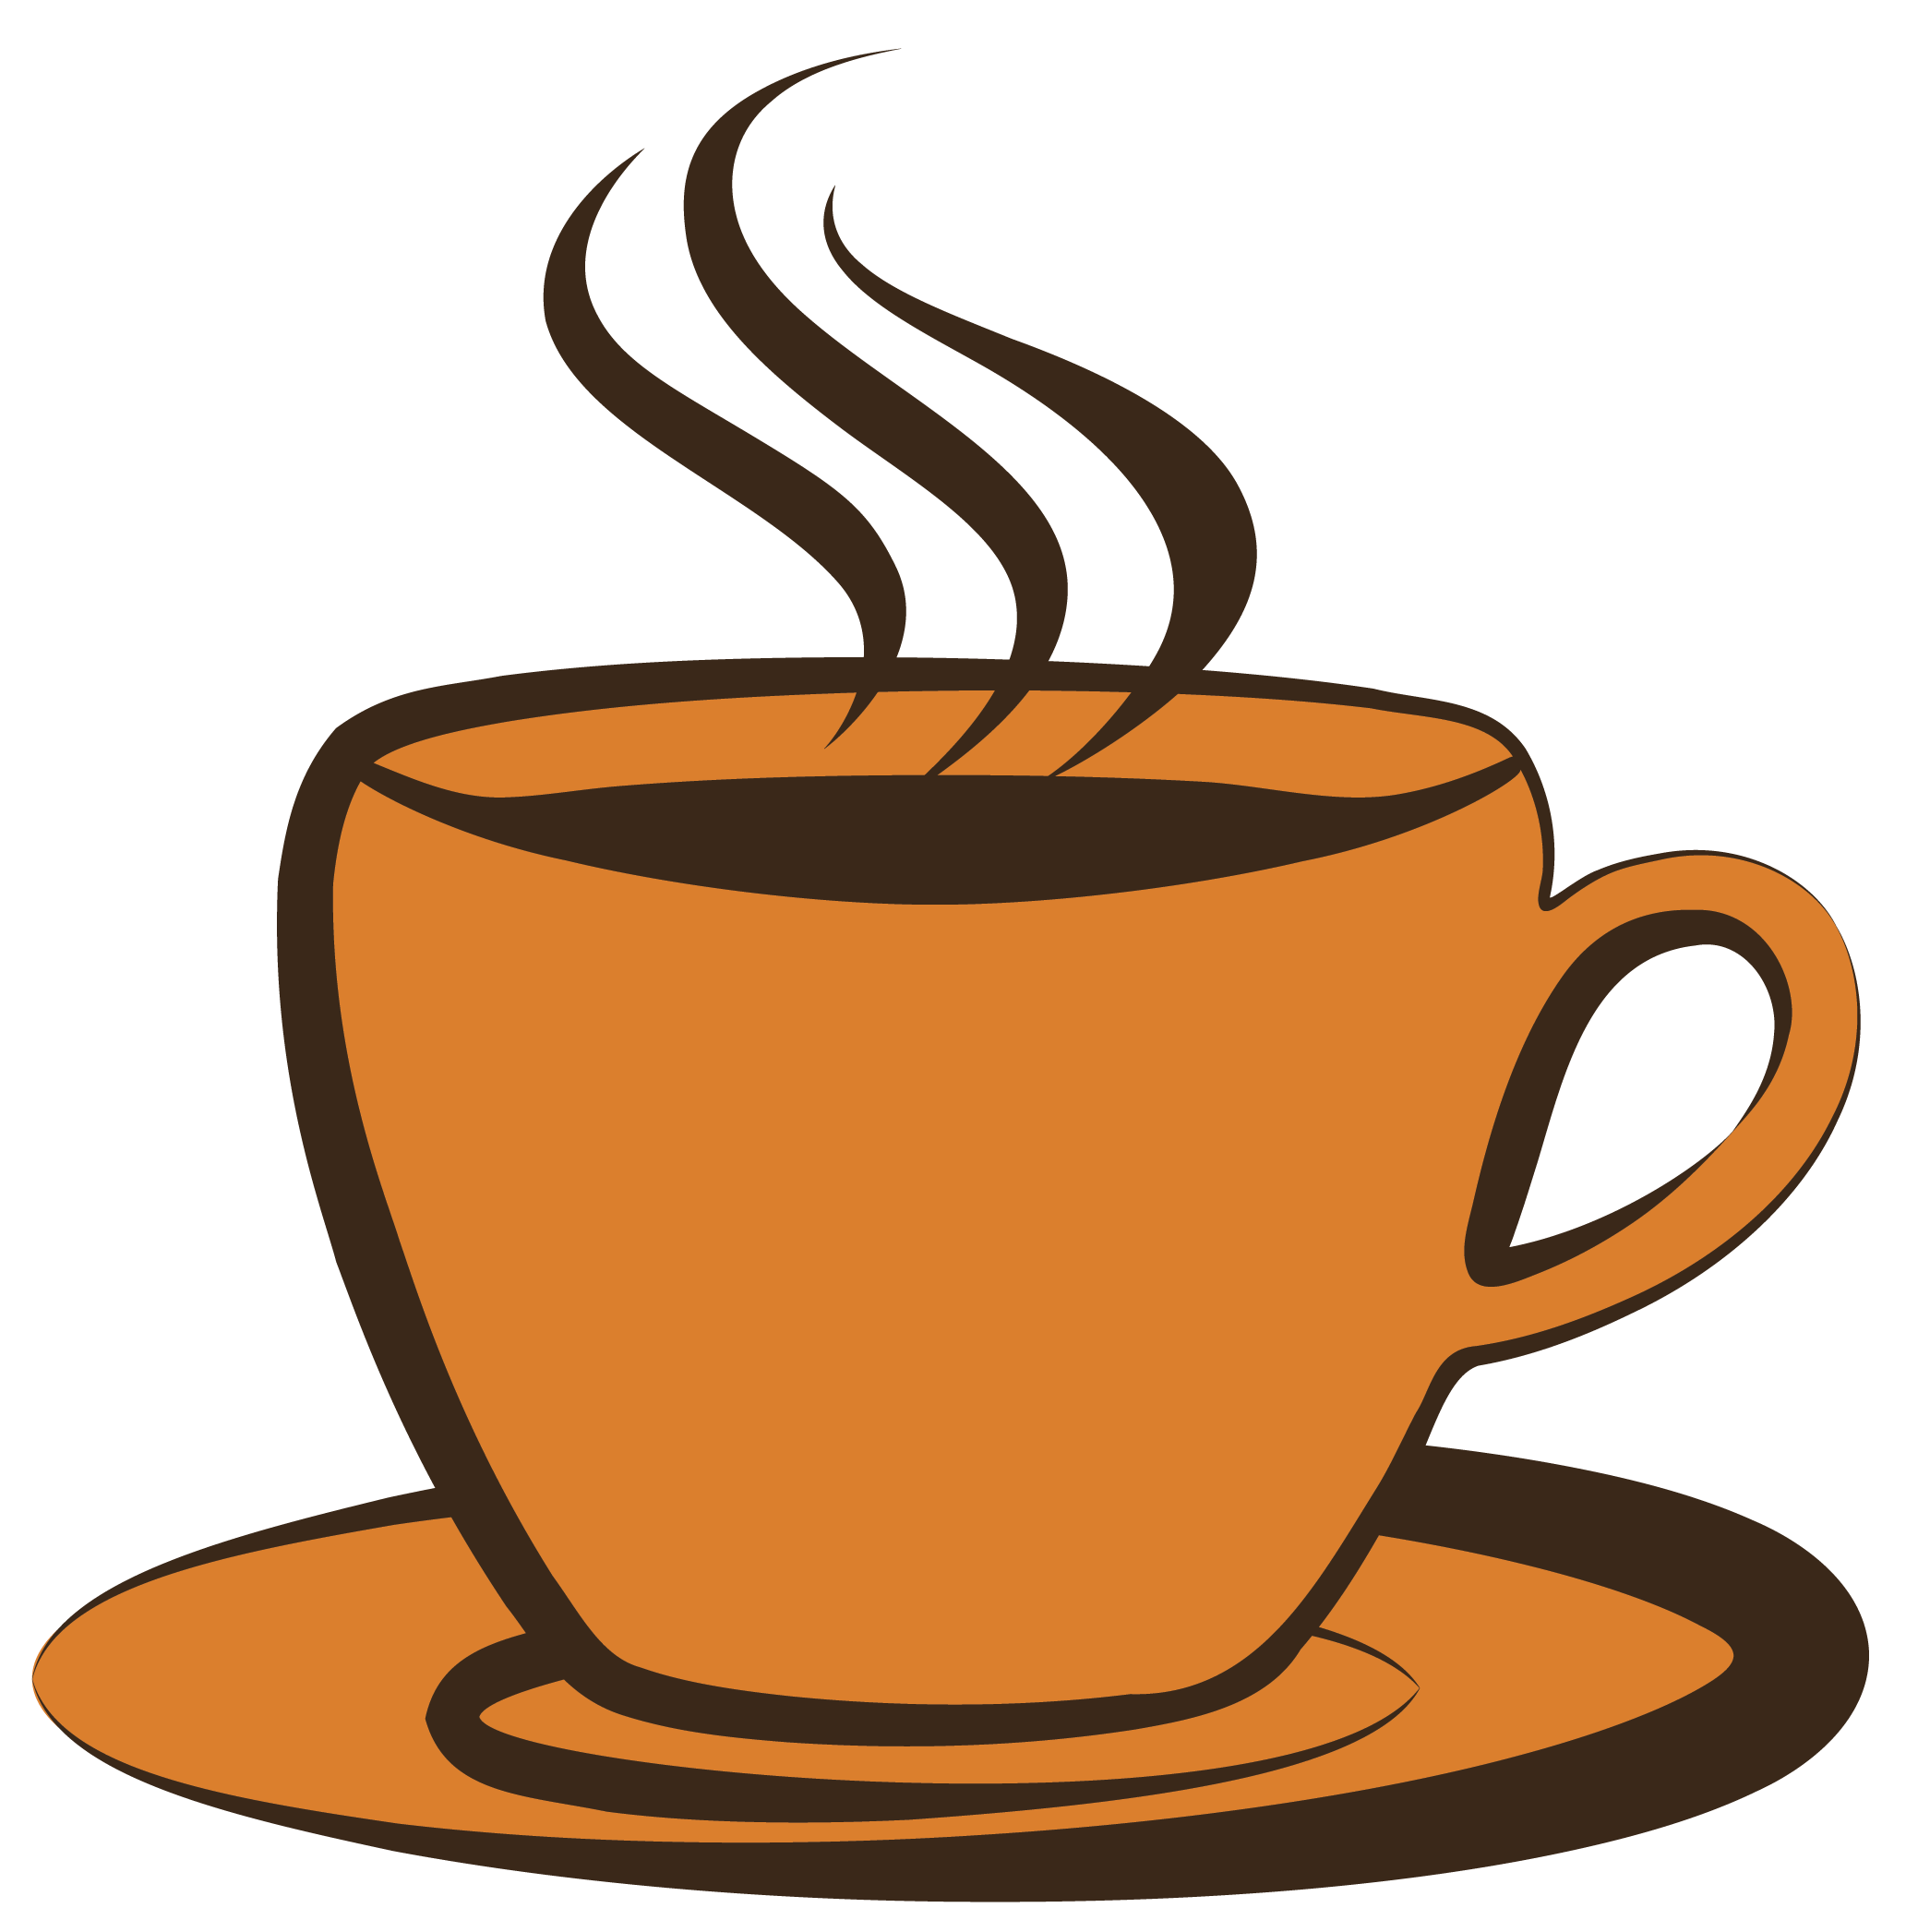 Coffee clipart hot and cold Clipart cup image Coffee Free